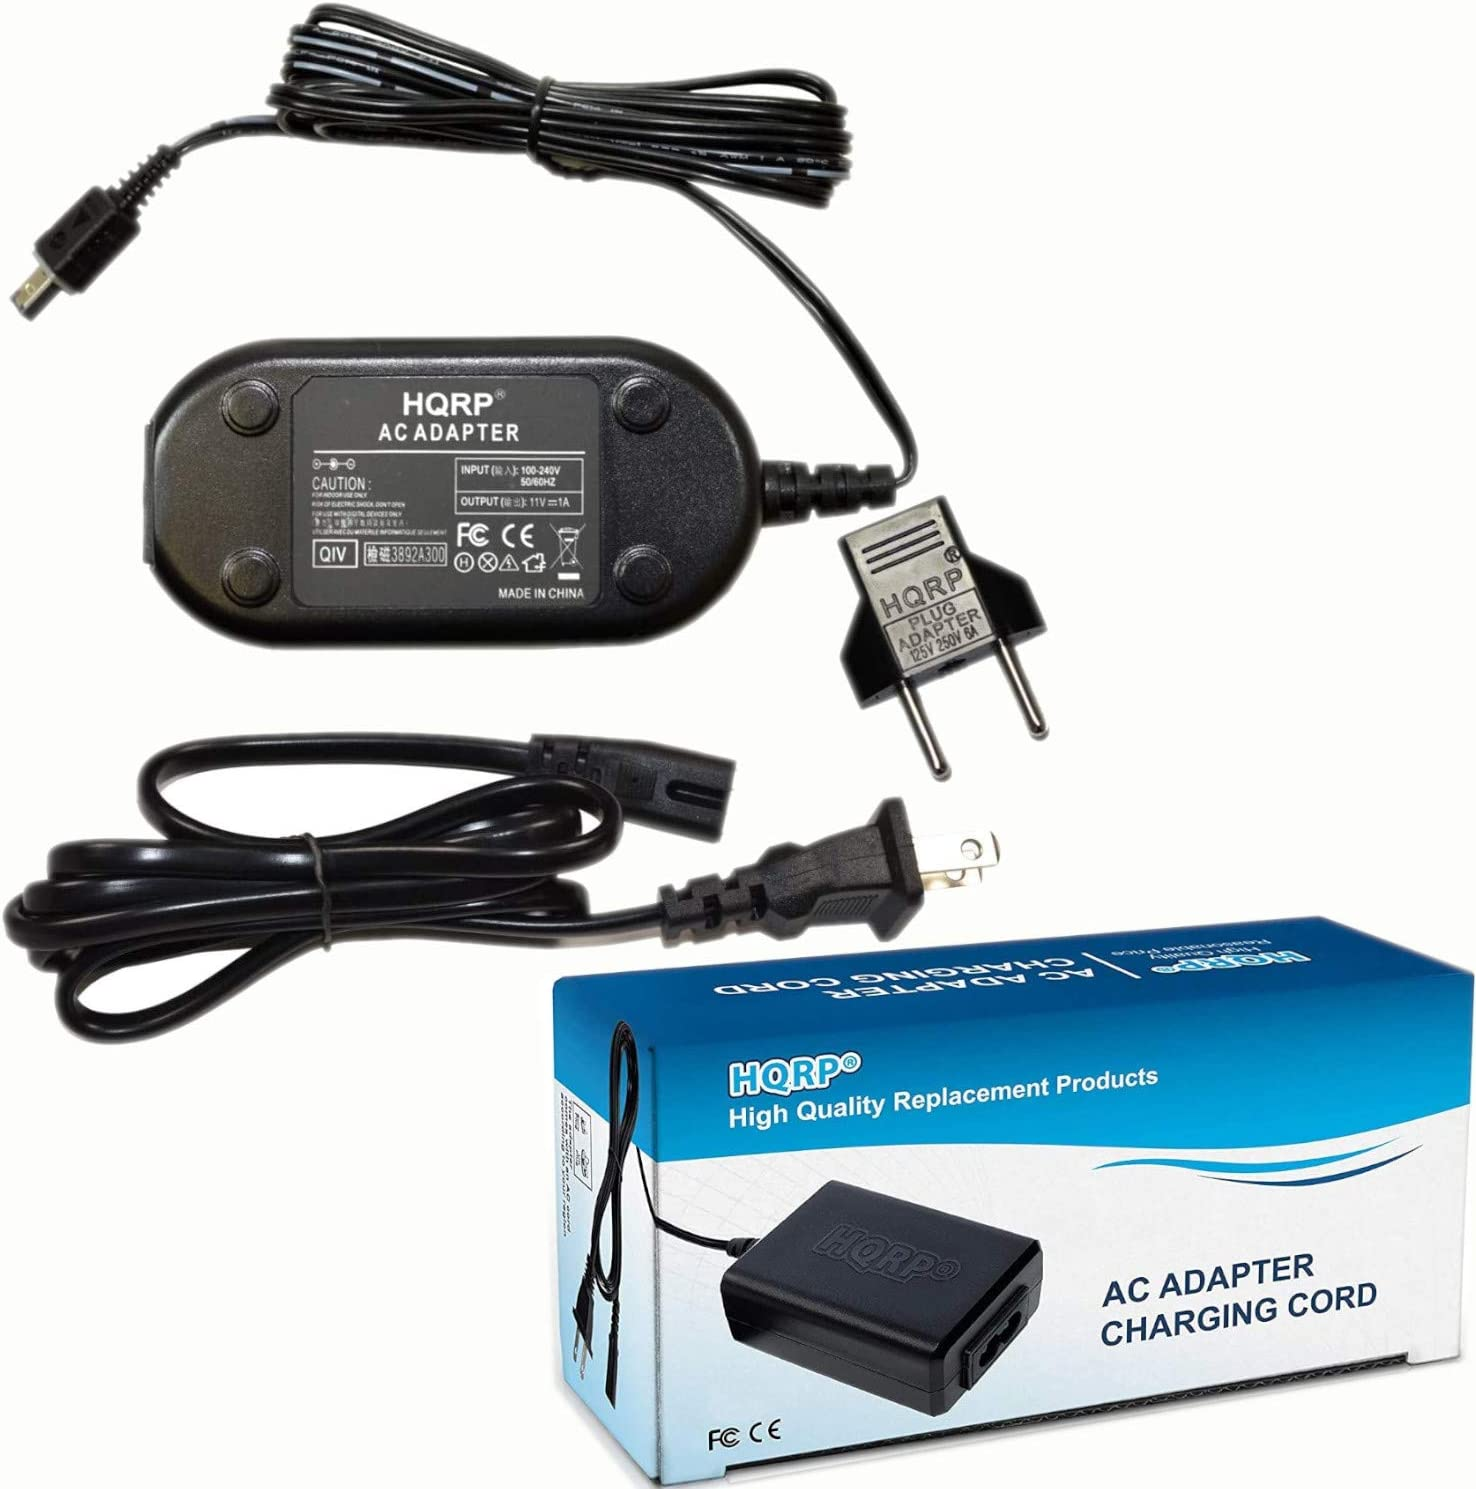 GZ-MG40 GZ-MG50 Battery Charger for JVC Everio GZ-MG30 GZ-MG70 Digital Camcorder